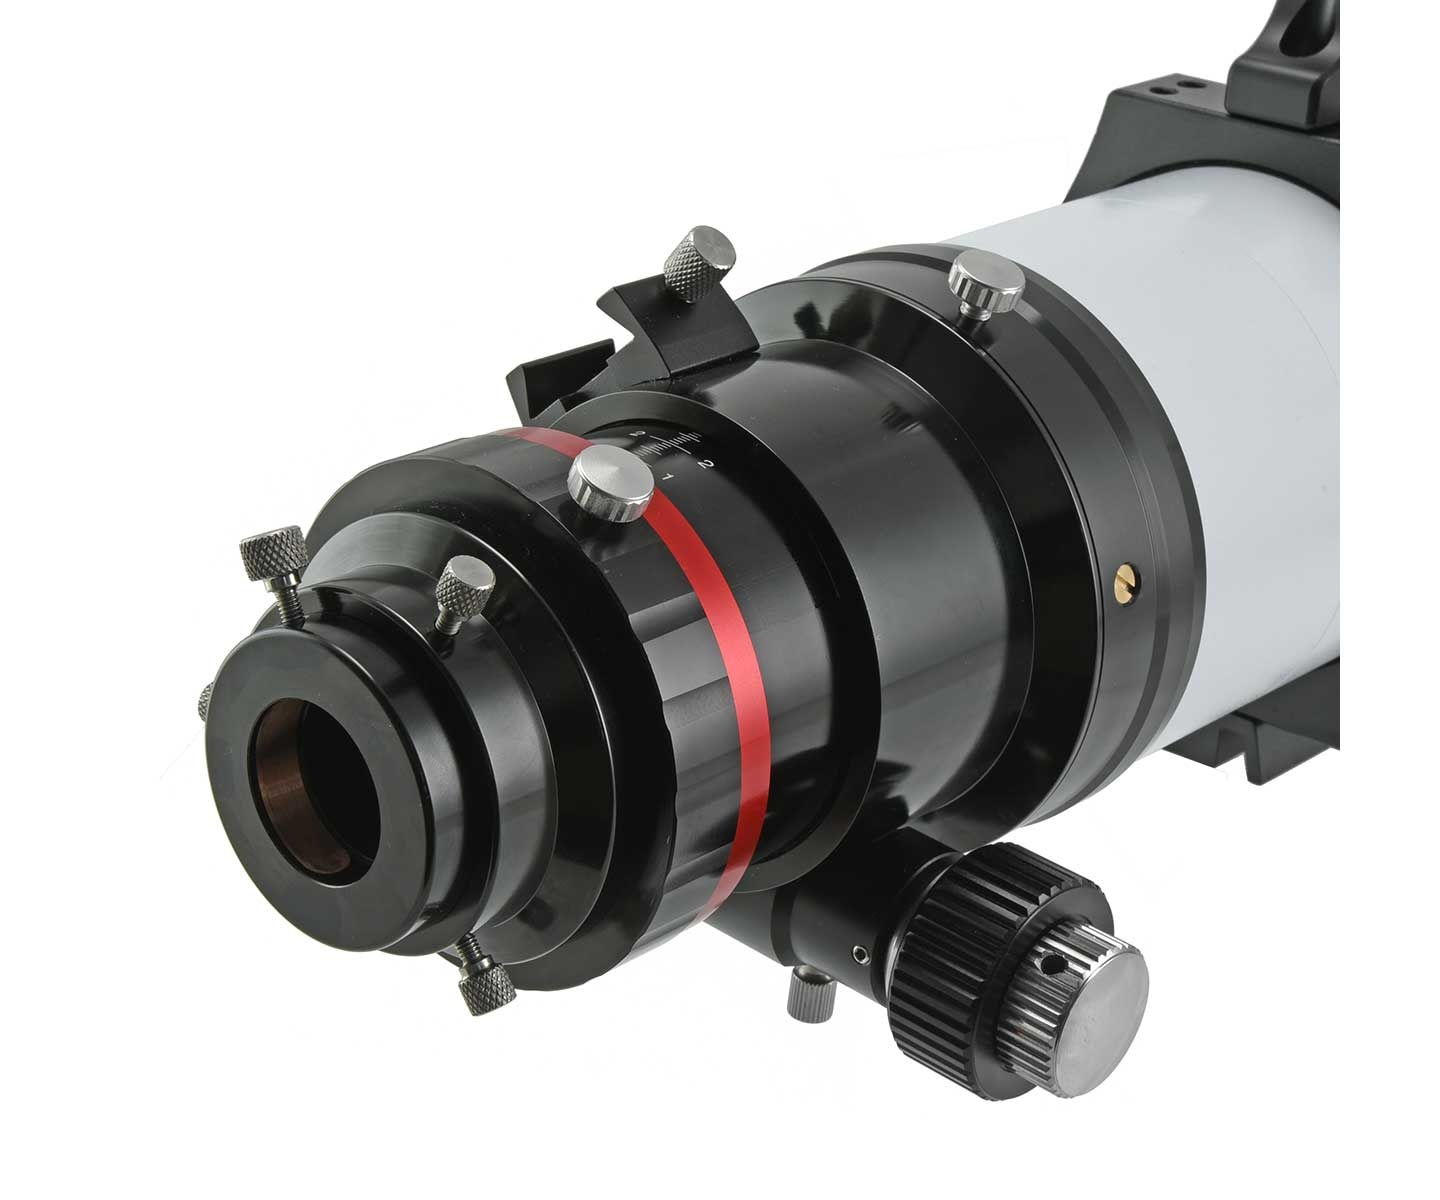 photoline-apo-107-focuser-1000.jpg.732cd23b4c8a57f9b127f181bb92a9b6.jpg